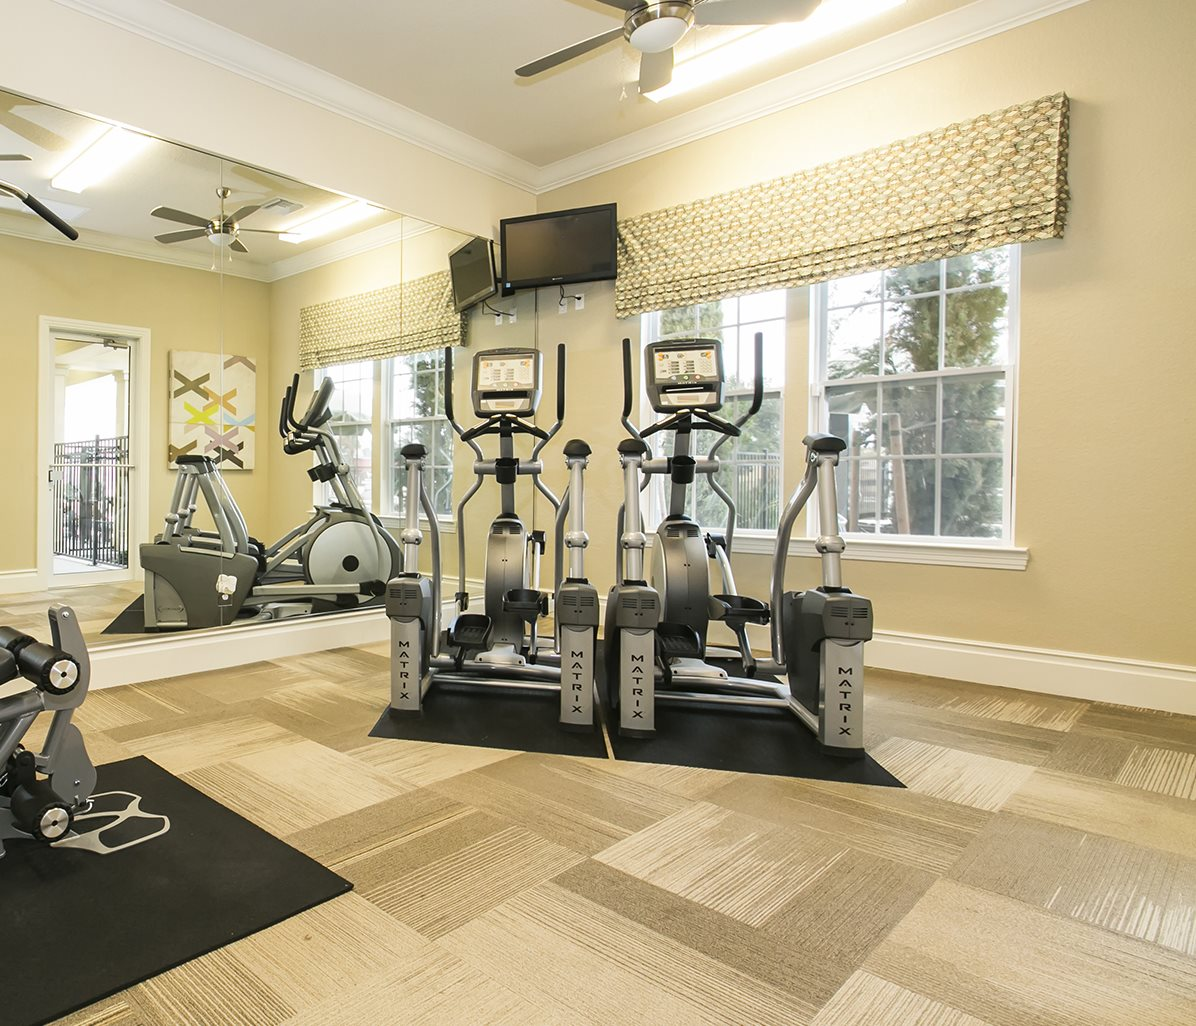 Spring Park Apartments: Apartments In Winter Springs, FL